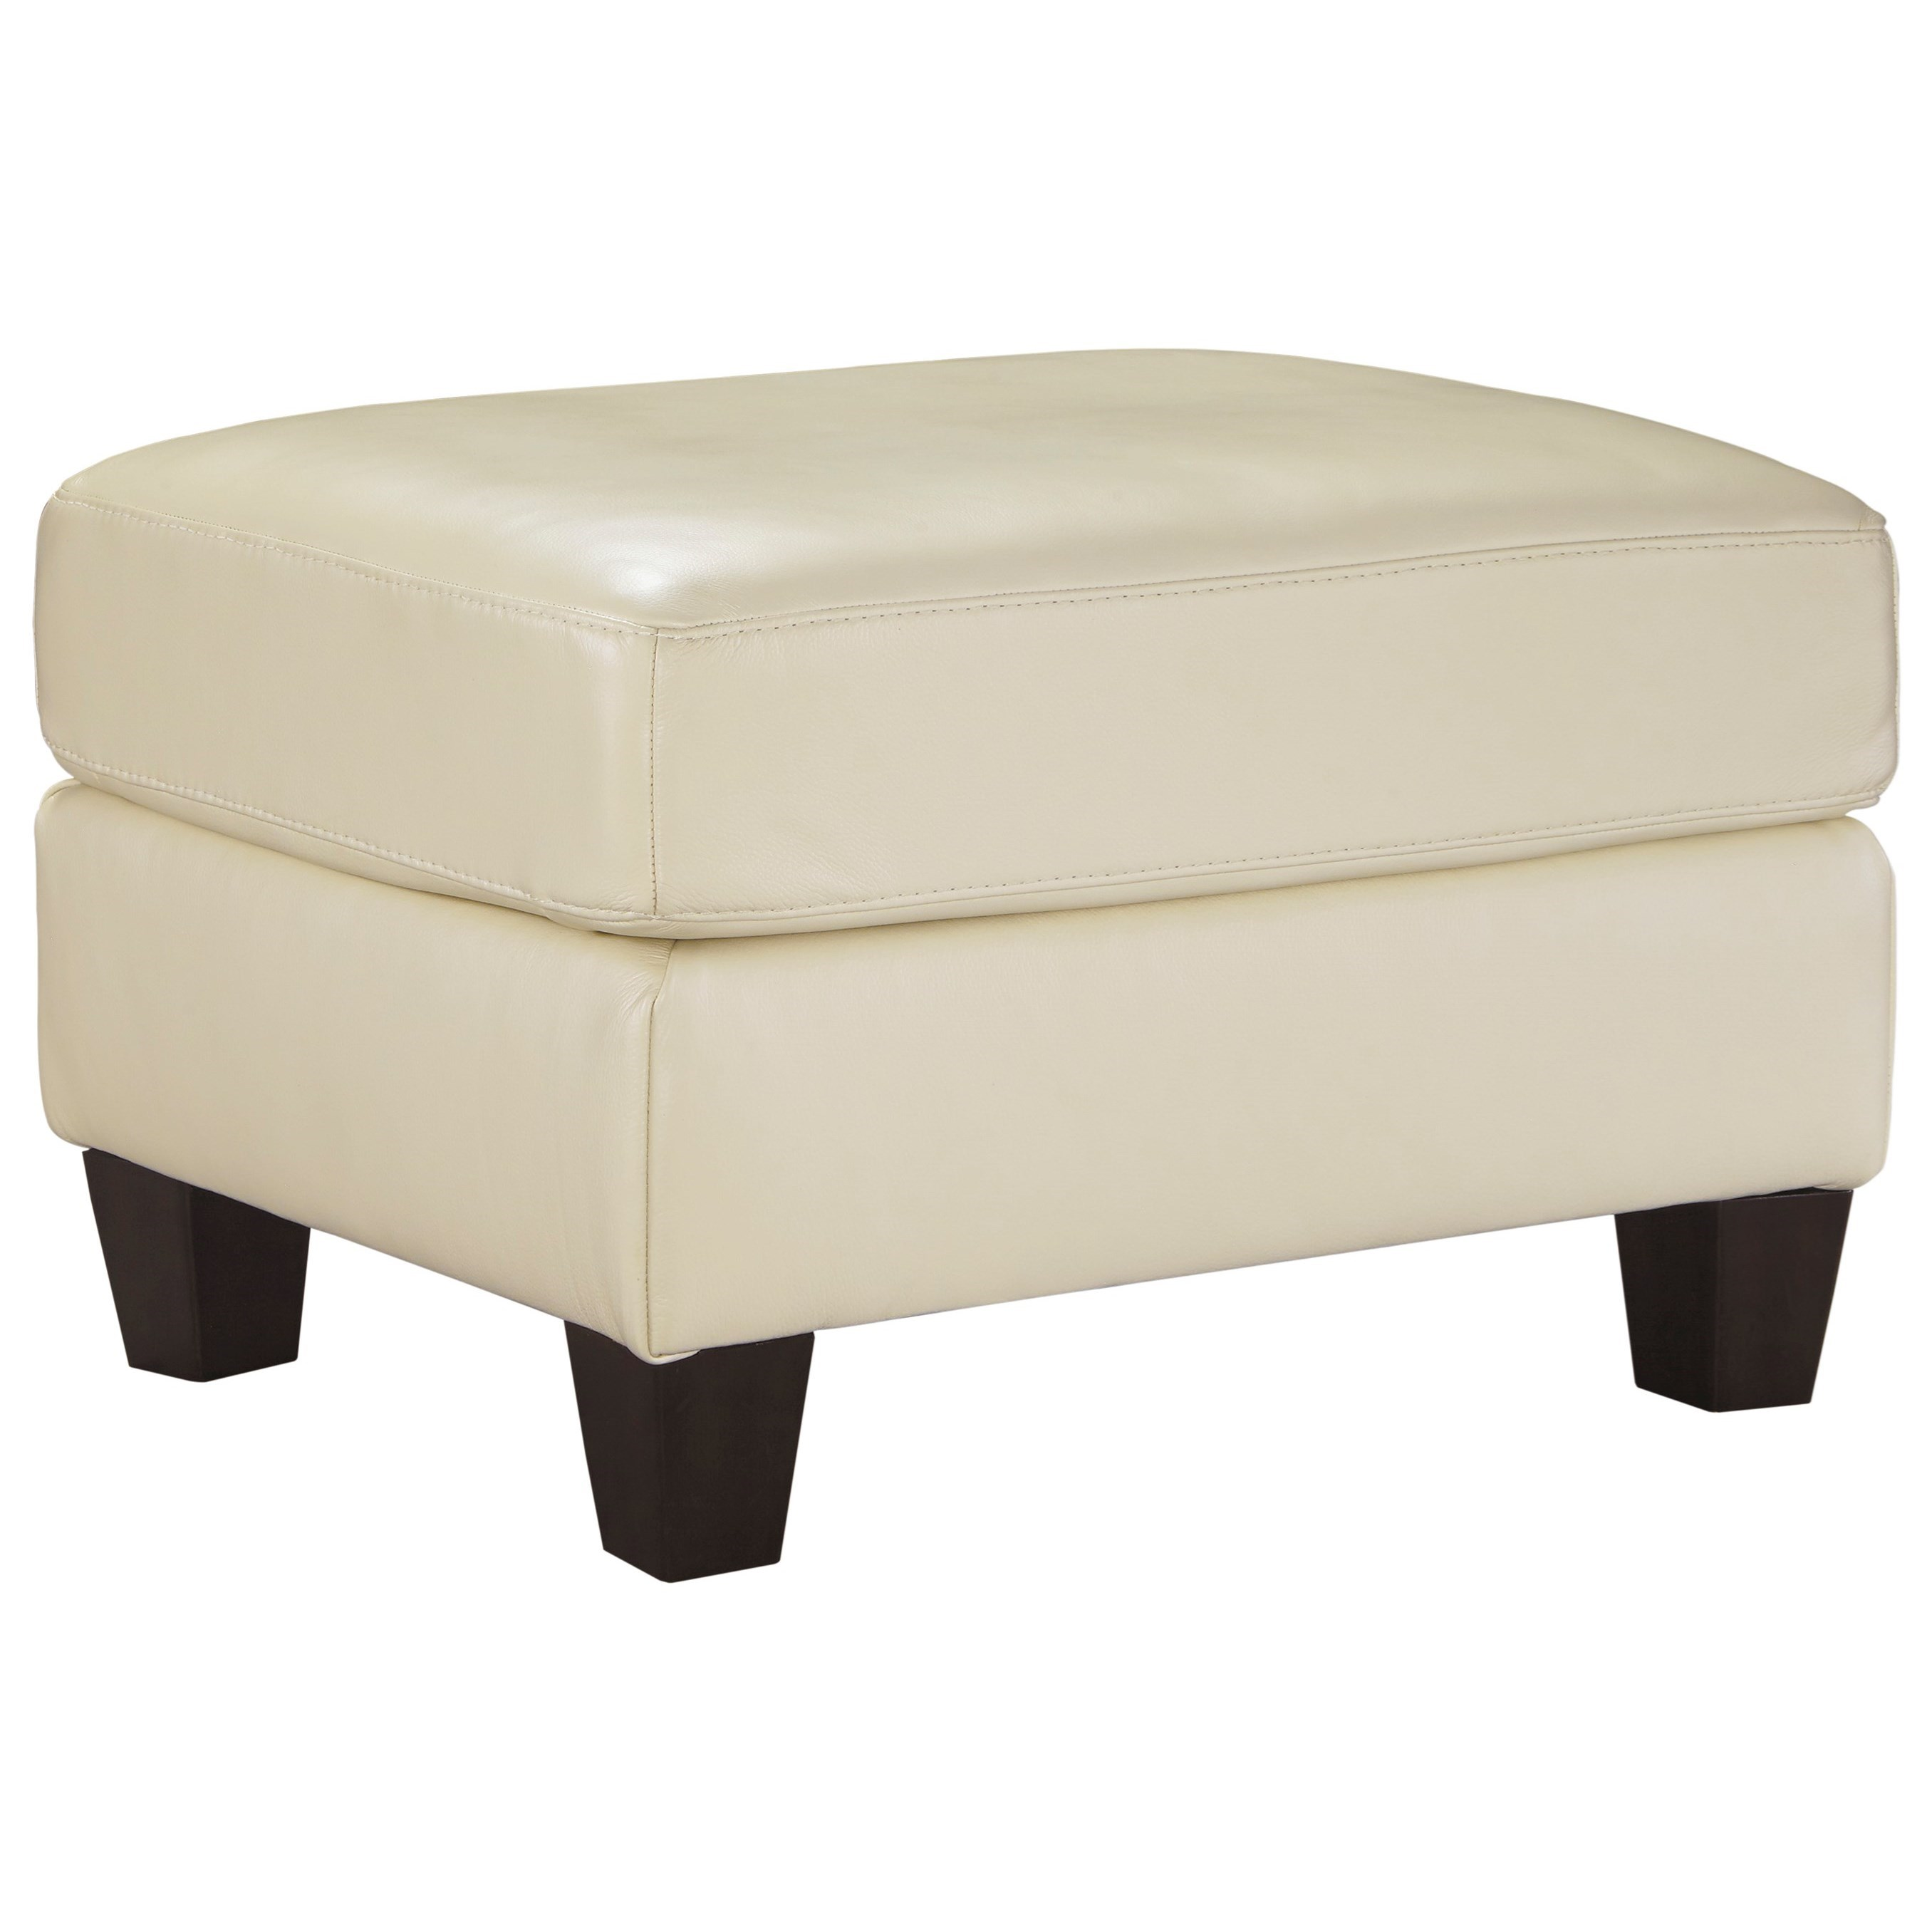 Signature Design by Ashley O'Kean Ottoman - Item Number: 5910214